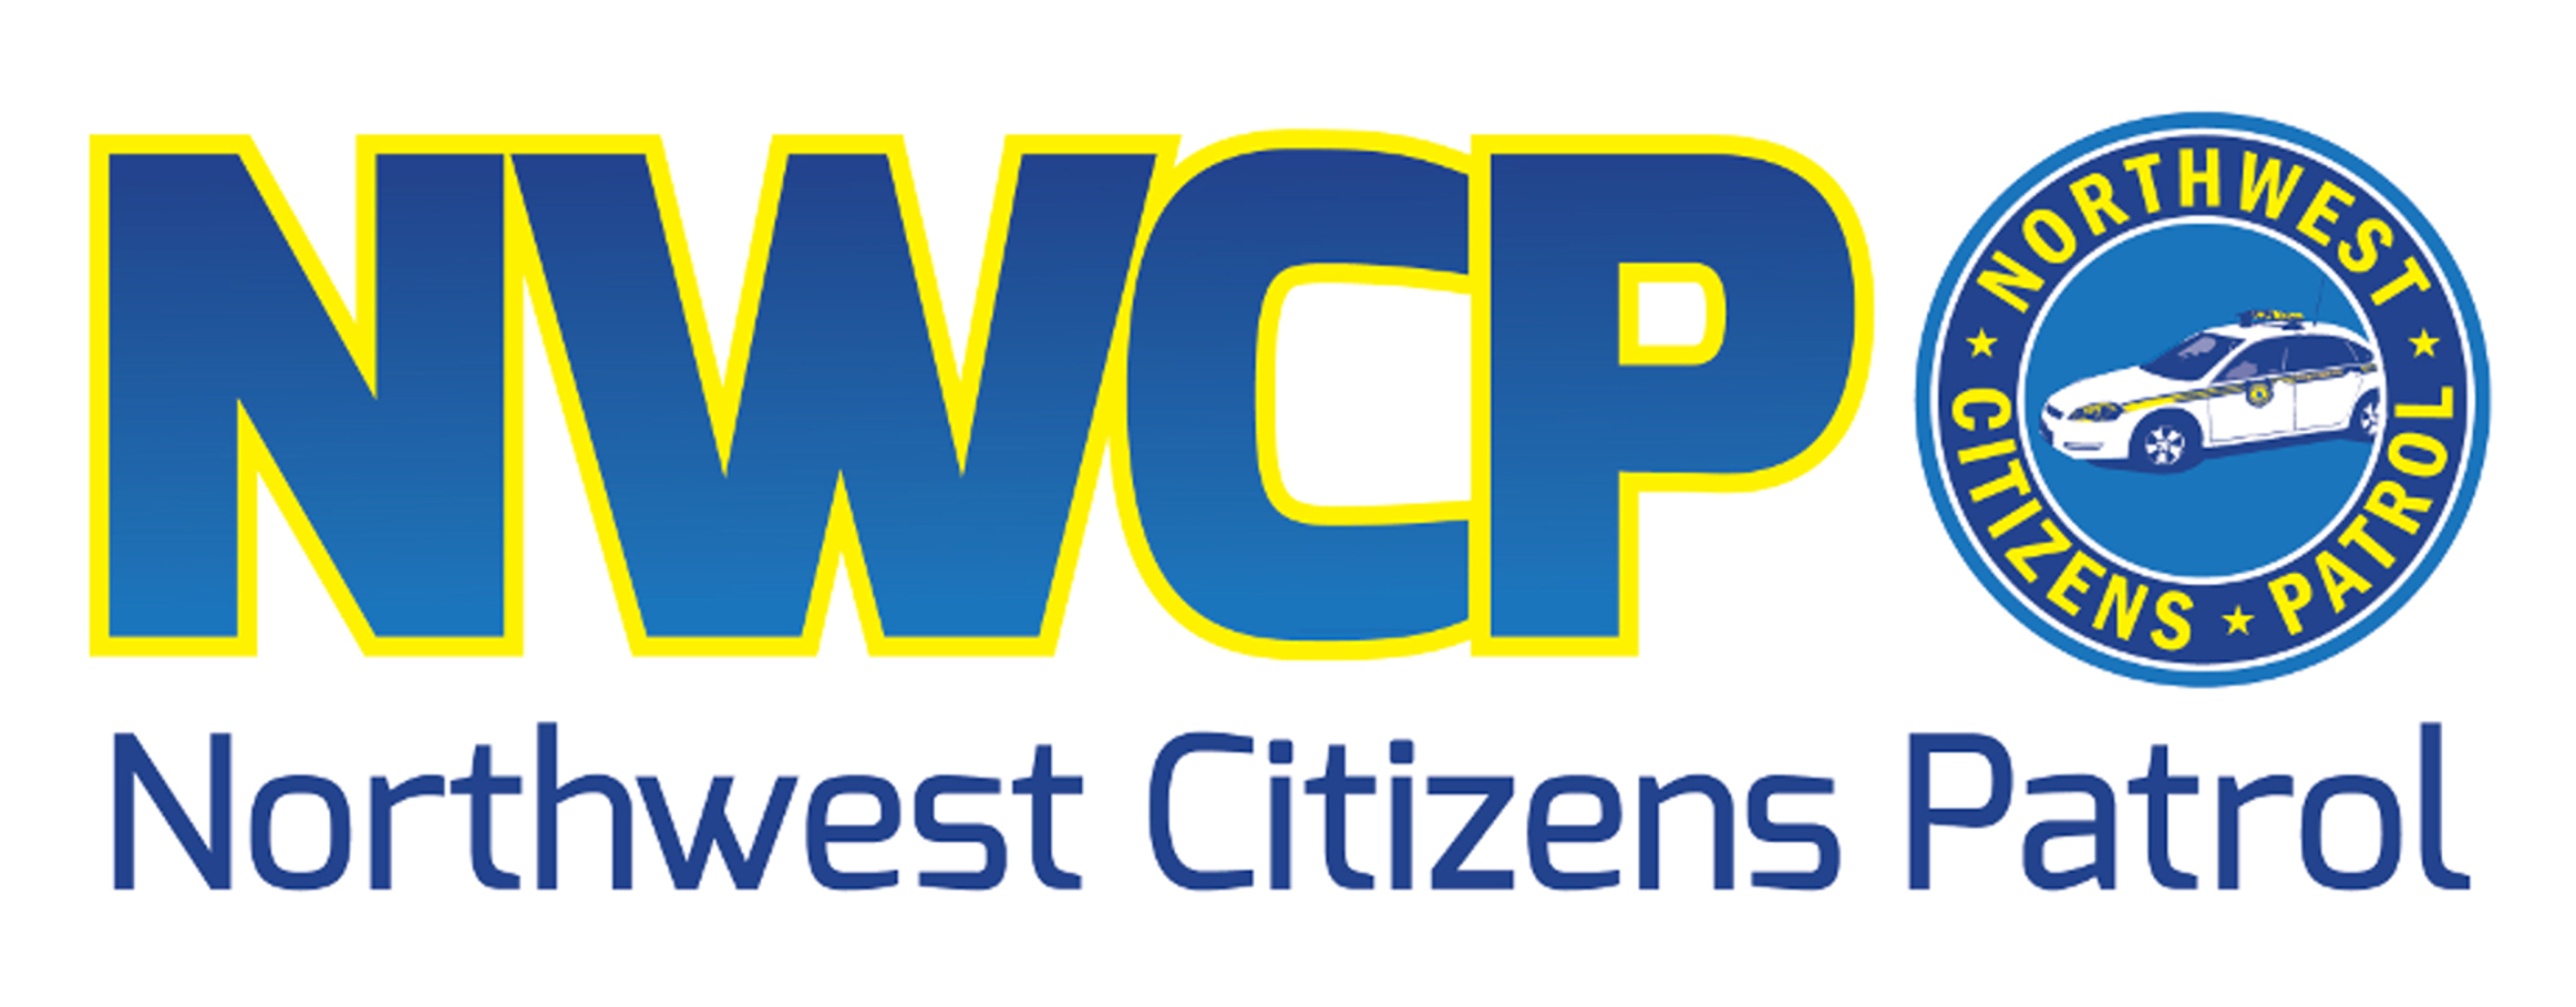 Northwest Citizens Patrol